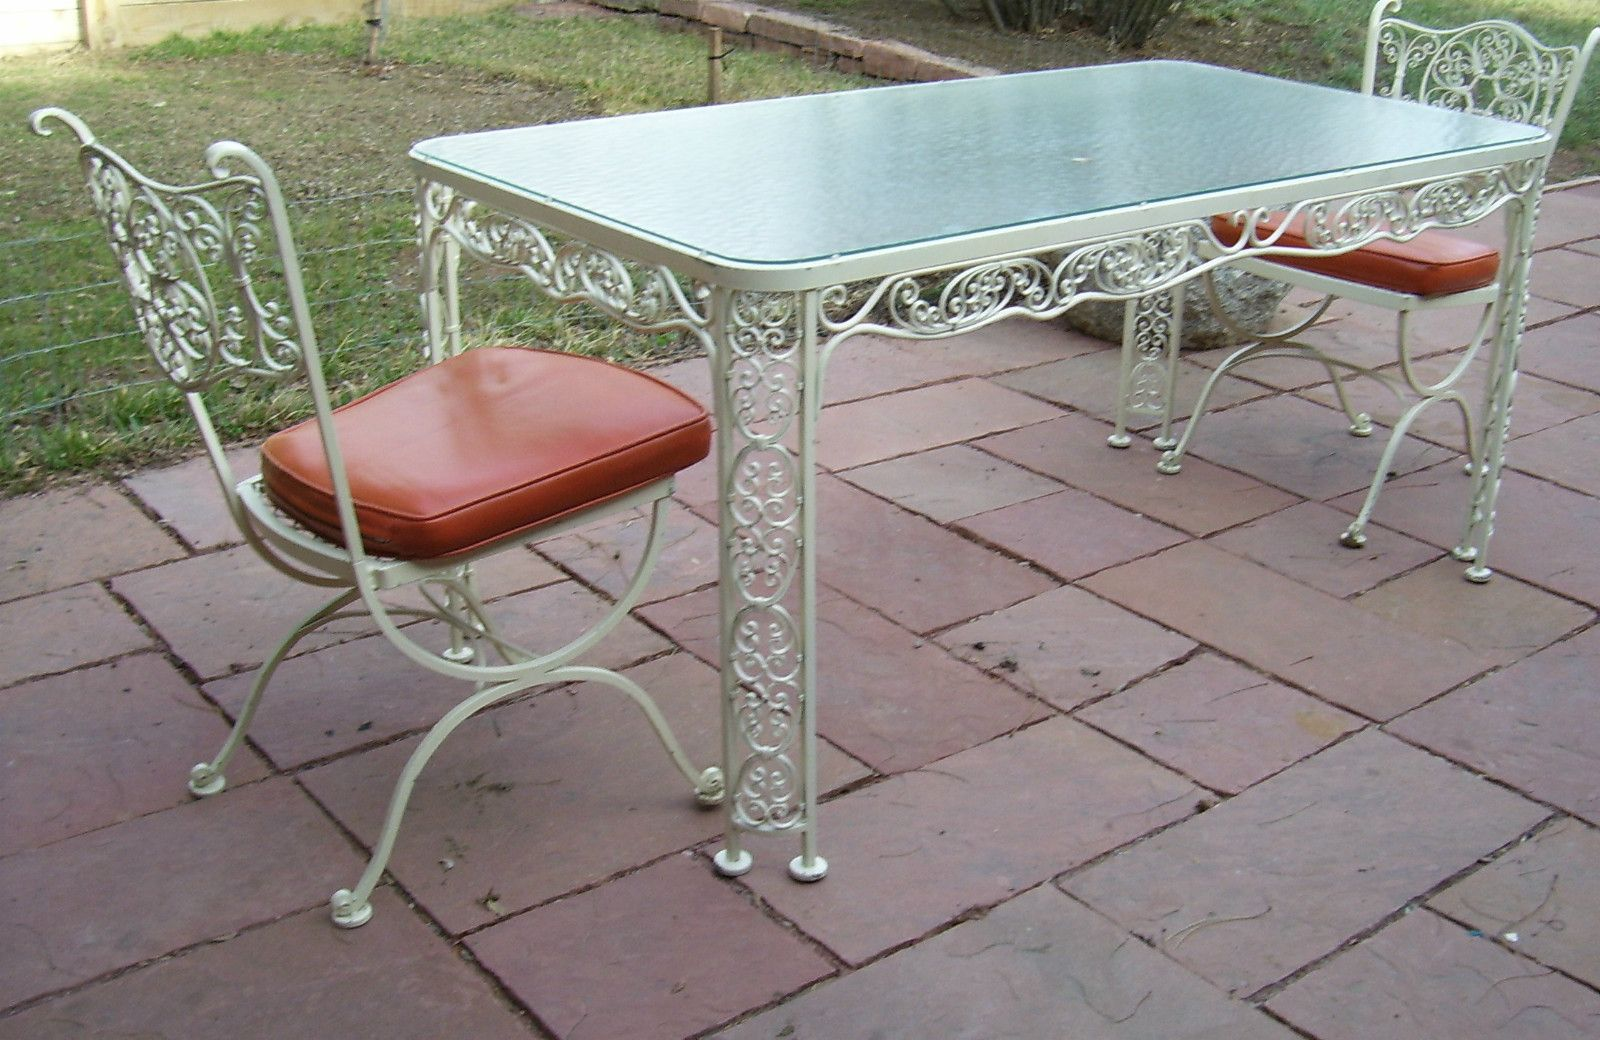 Woodard Andalusian Buy It Now On EBay $399.00 · Vintage Patio FurnitureIron  ...